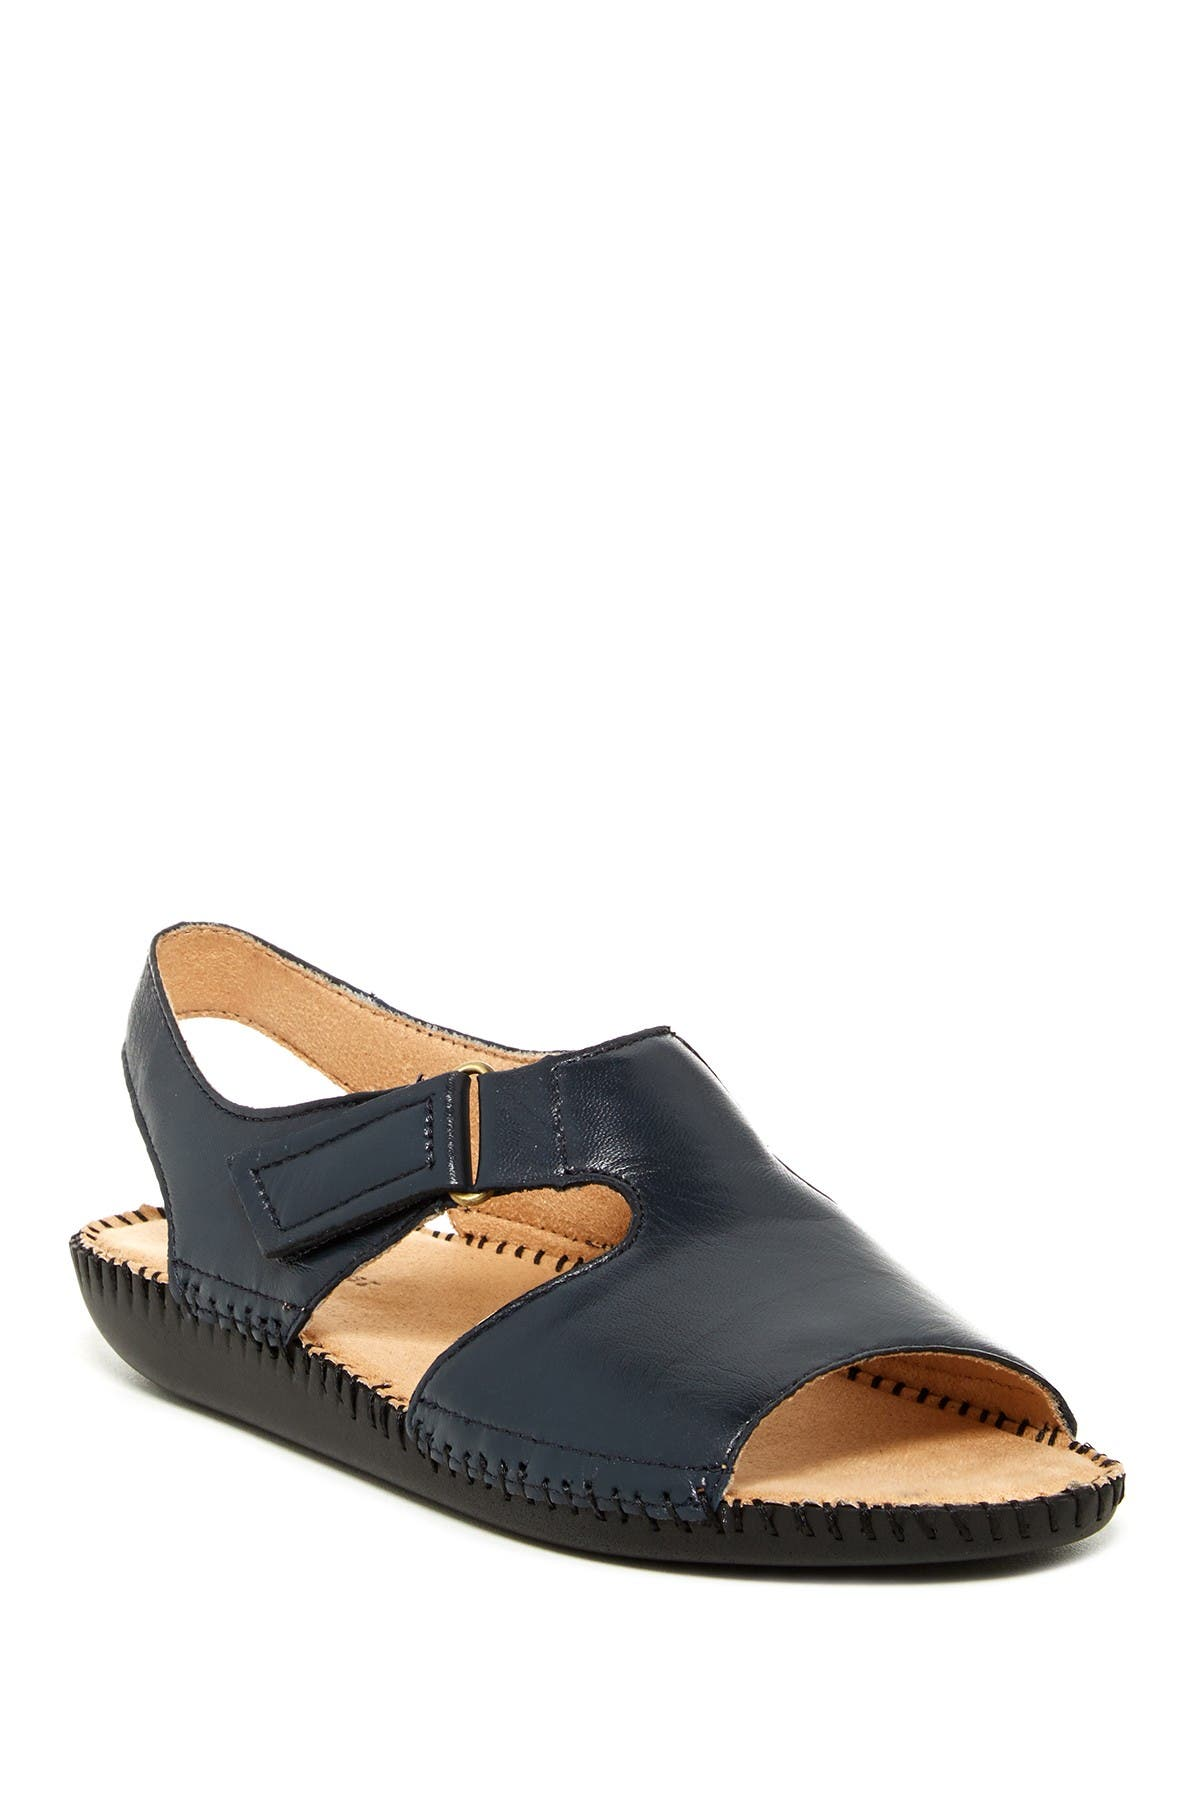 Image of Naturalizer Scout Leather Sandal - Multiple Widths Available